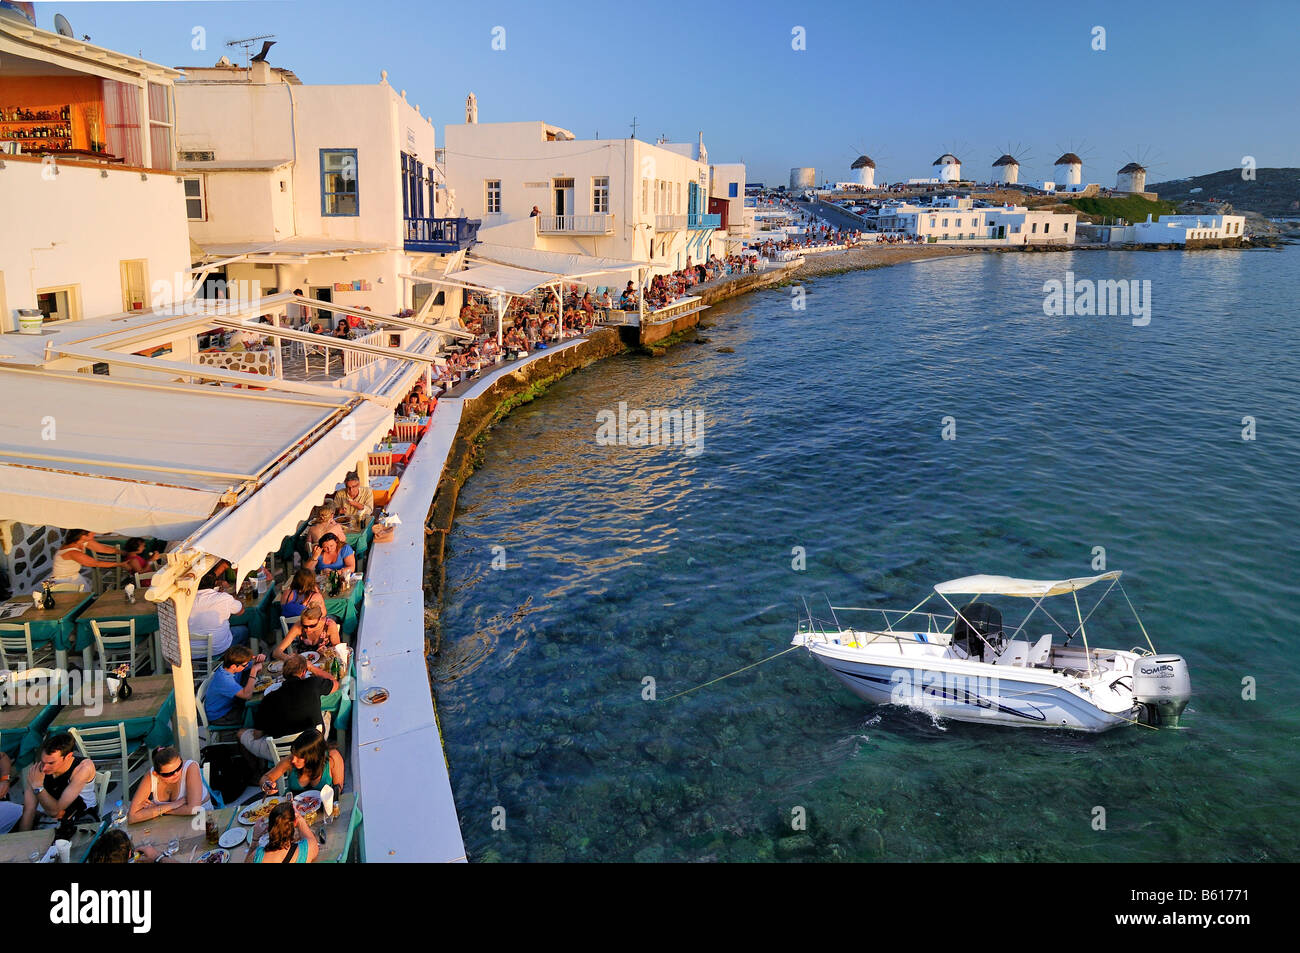 Tourists seated at restaurants in Little Venice and windmills, collage containing a motor yacht, Mykonos Island, - Stock Image